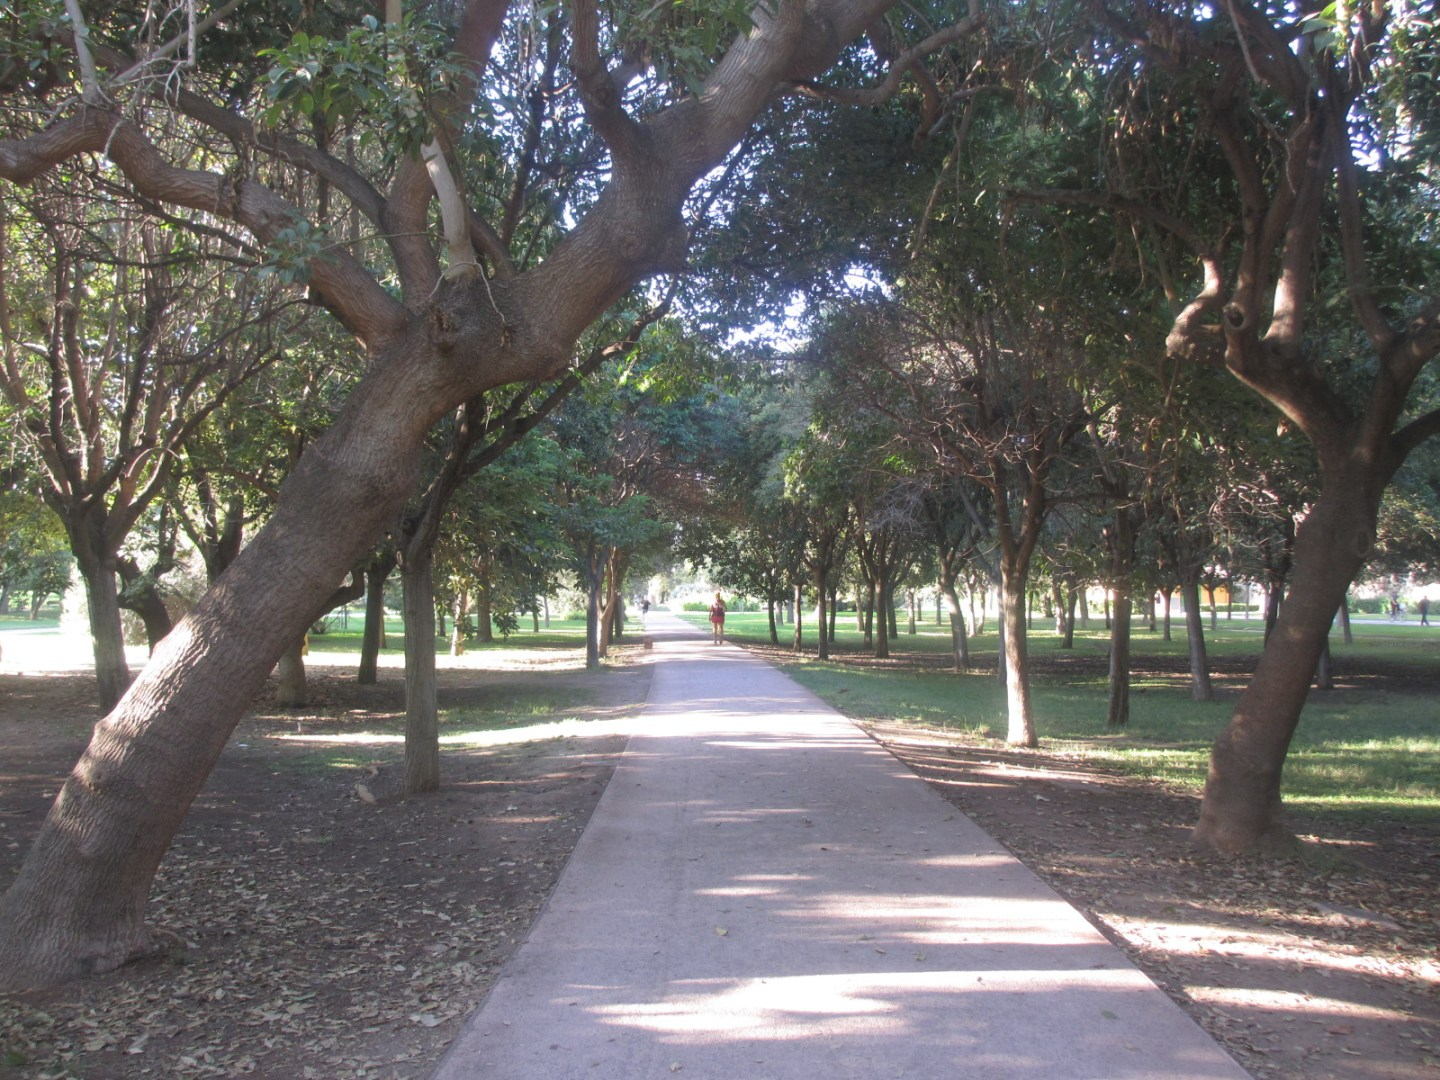 The old river bed park in Valencia